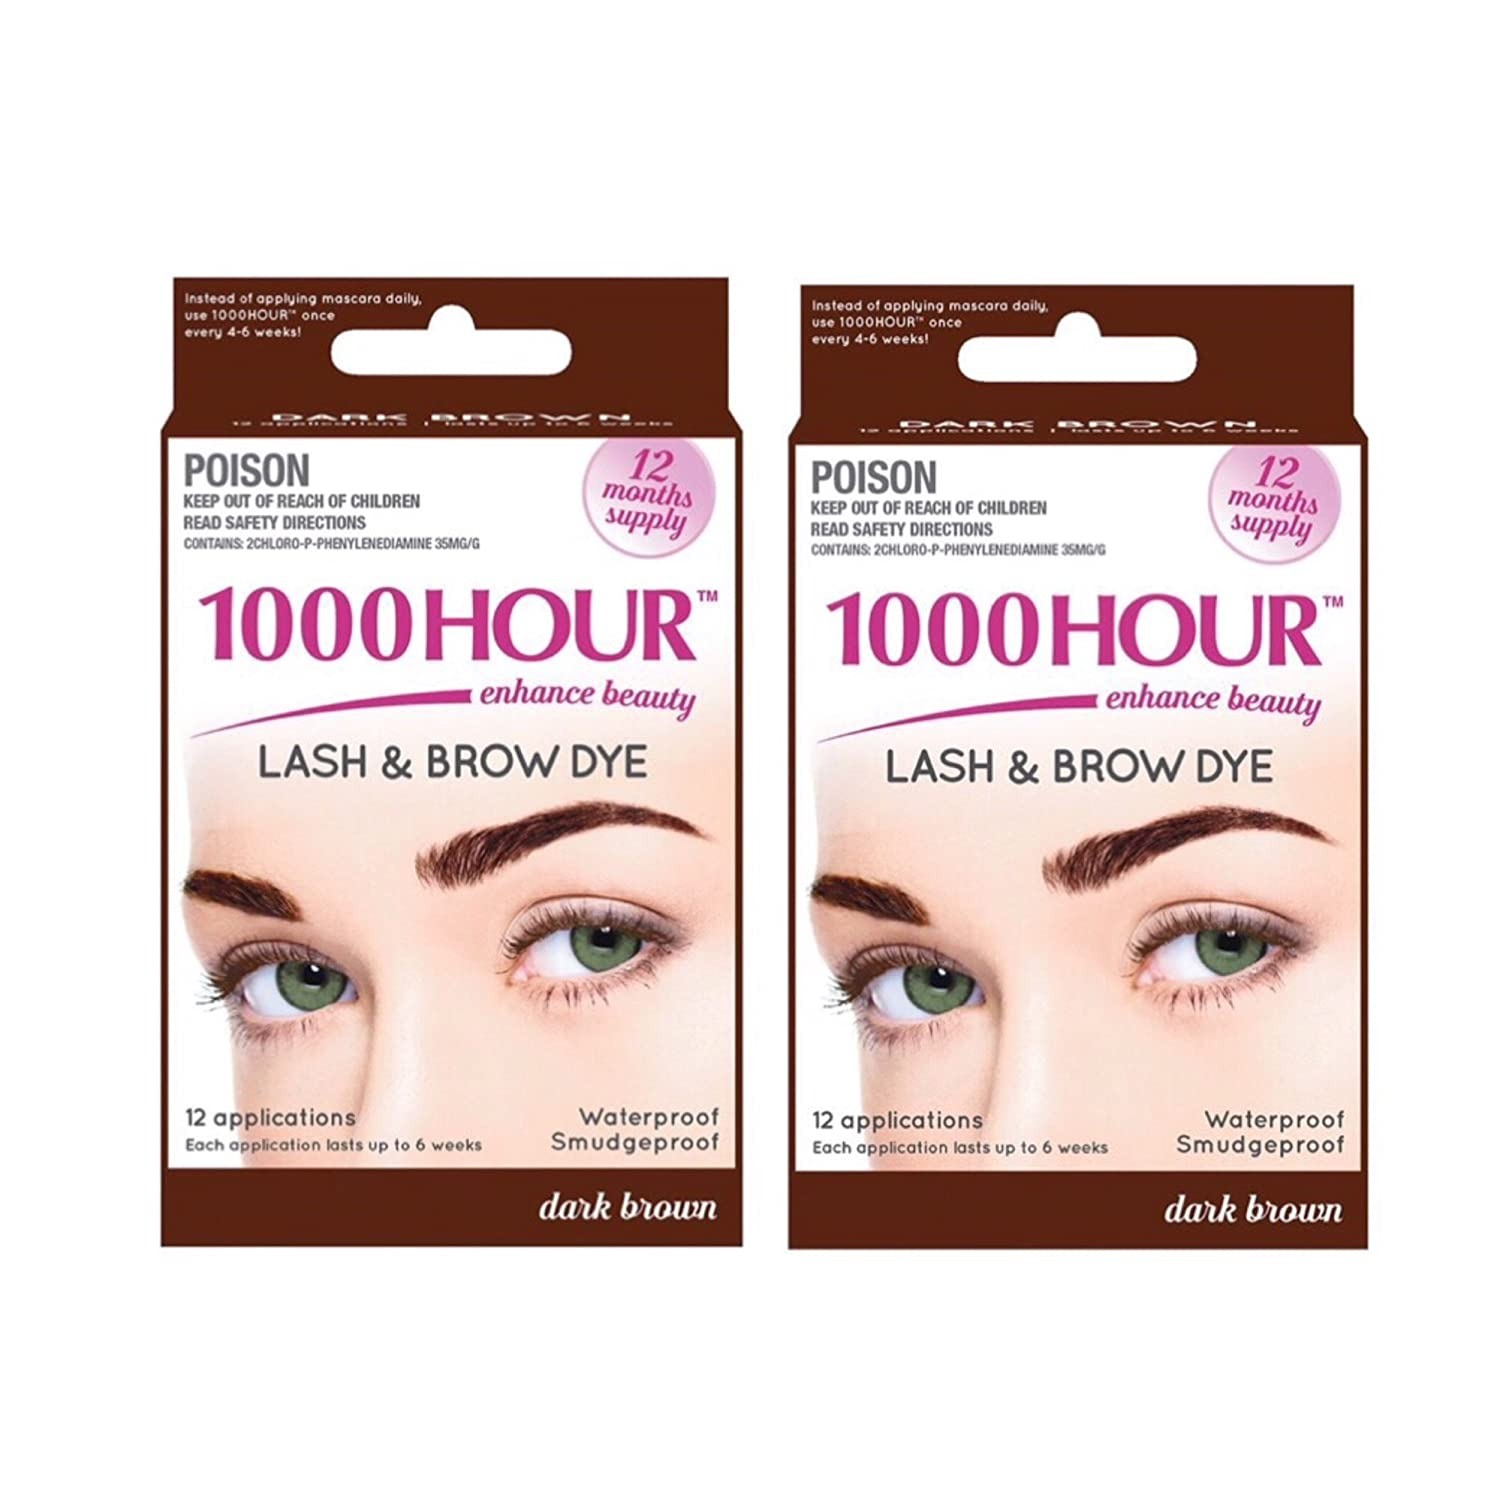 063bfecb83b Amazon.com : 1000 Hour Eyelash & Brow Dye /Tint Kit Permanent Mascara (Dark  Brown) (2 Pack) : Beauty